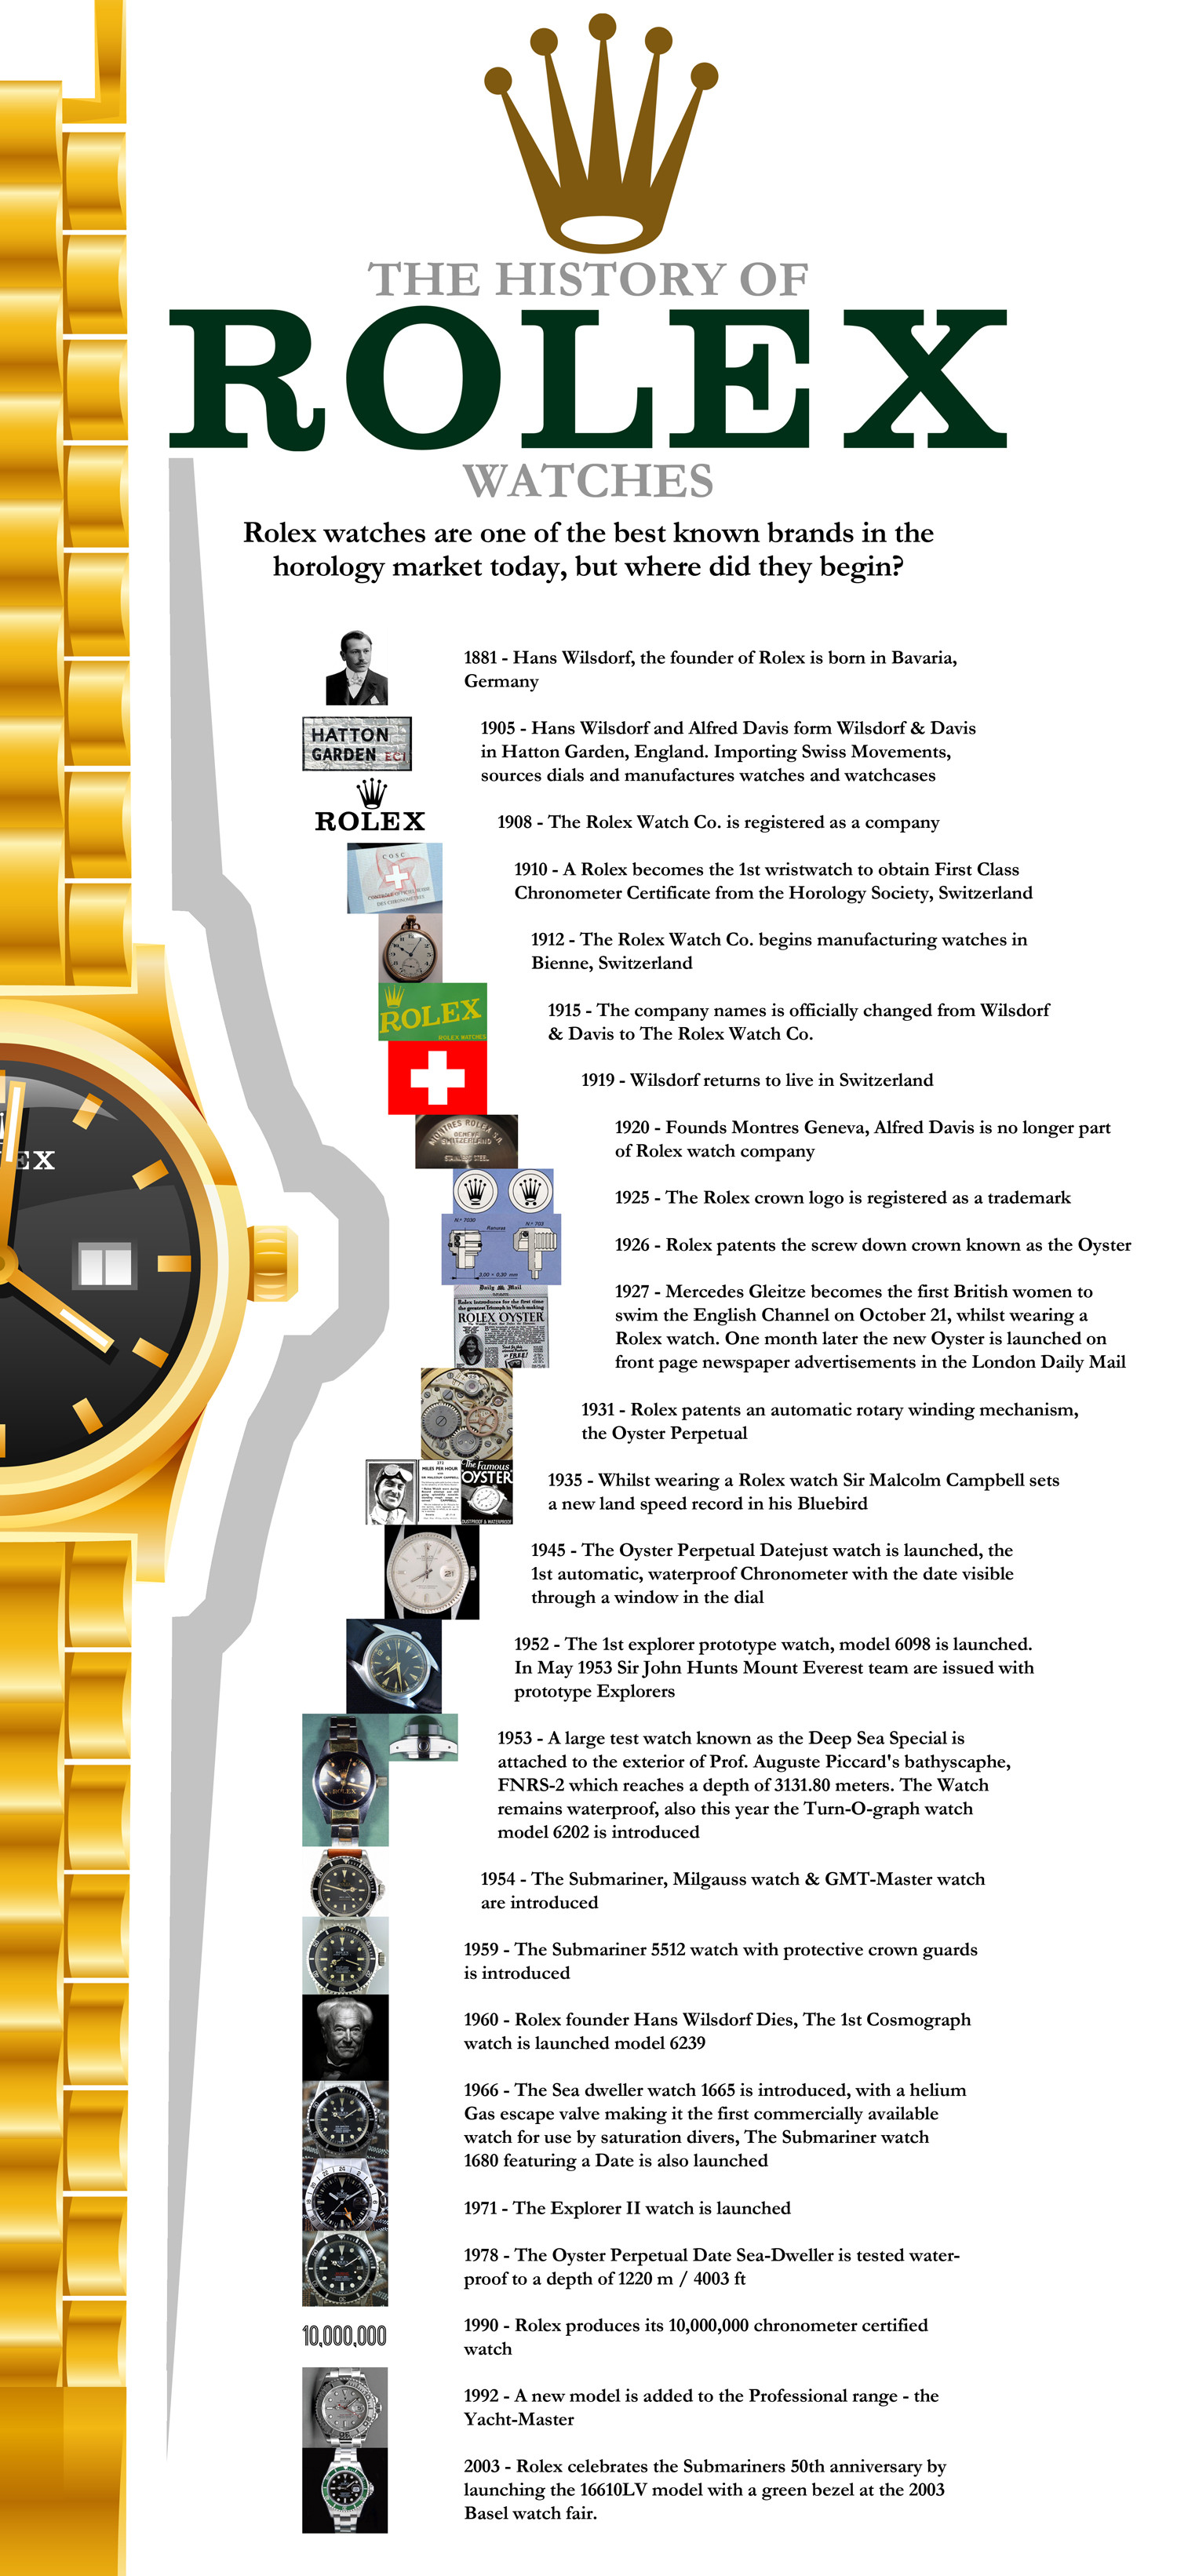 The History Of Rolex Watches Infographic